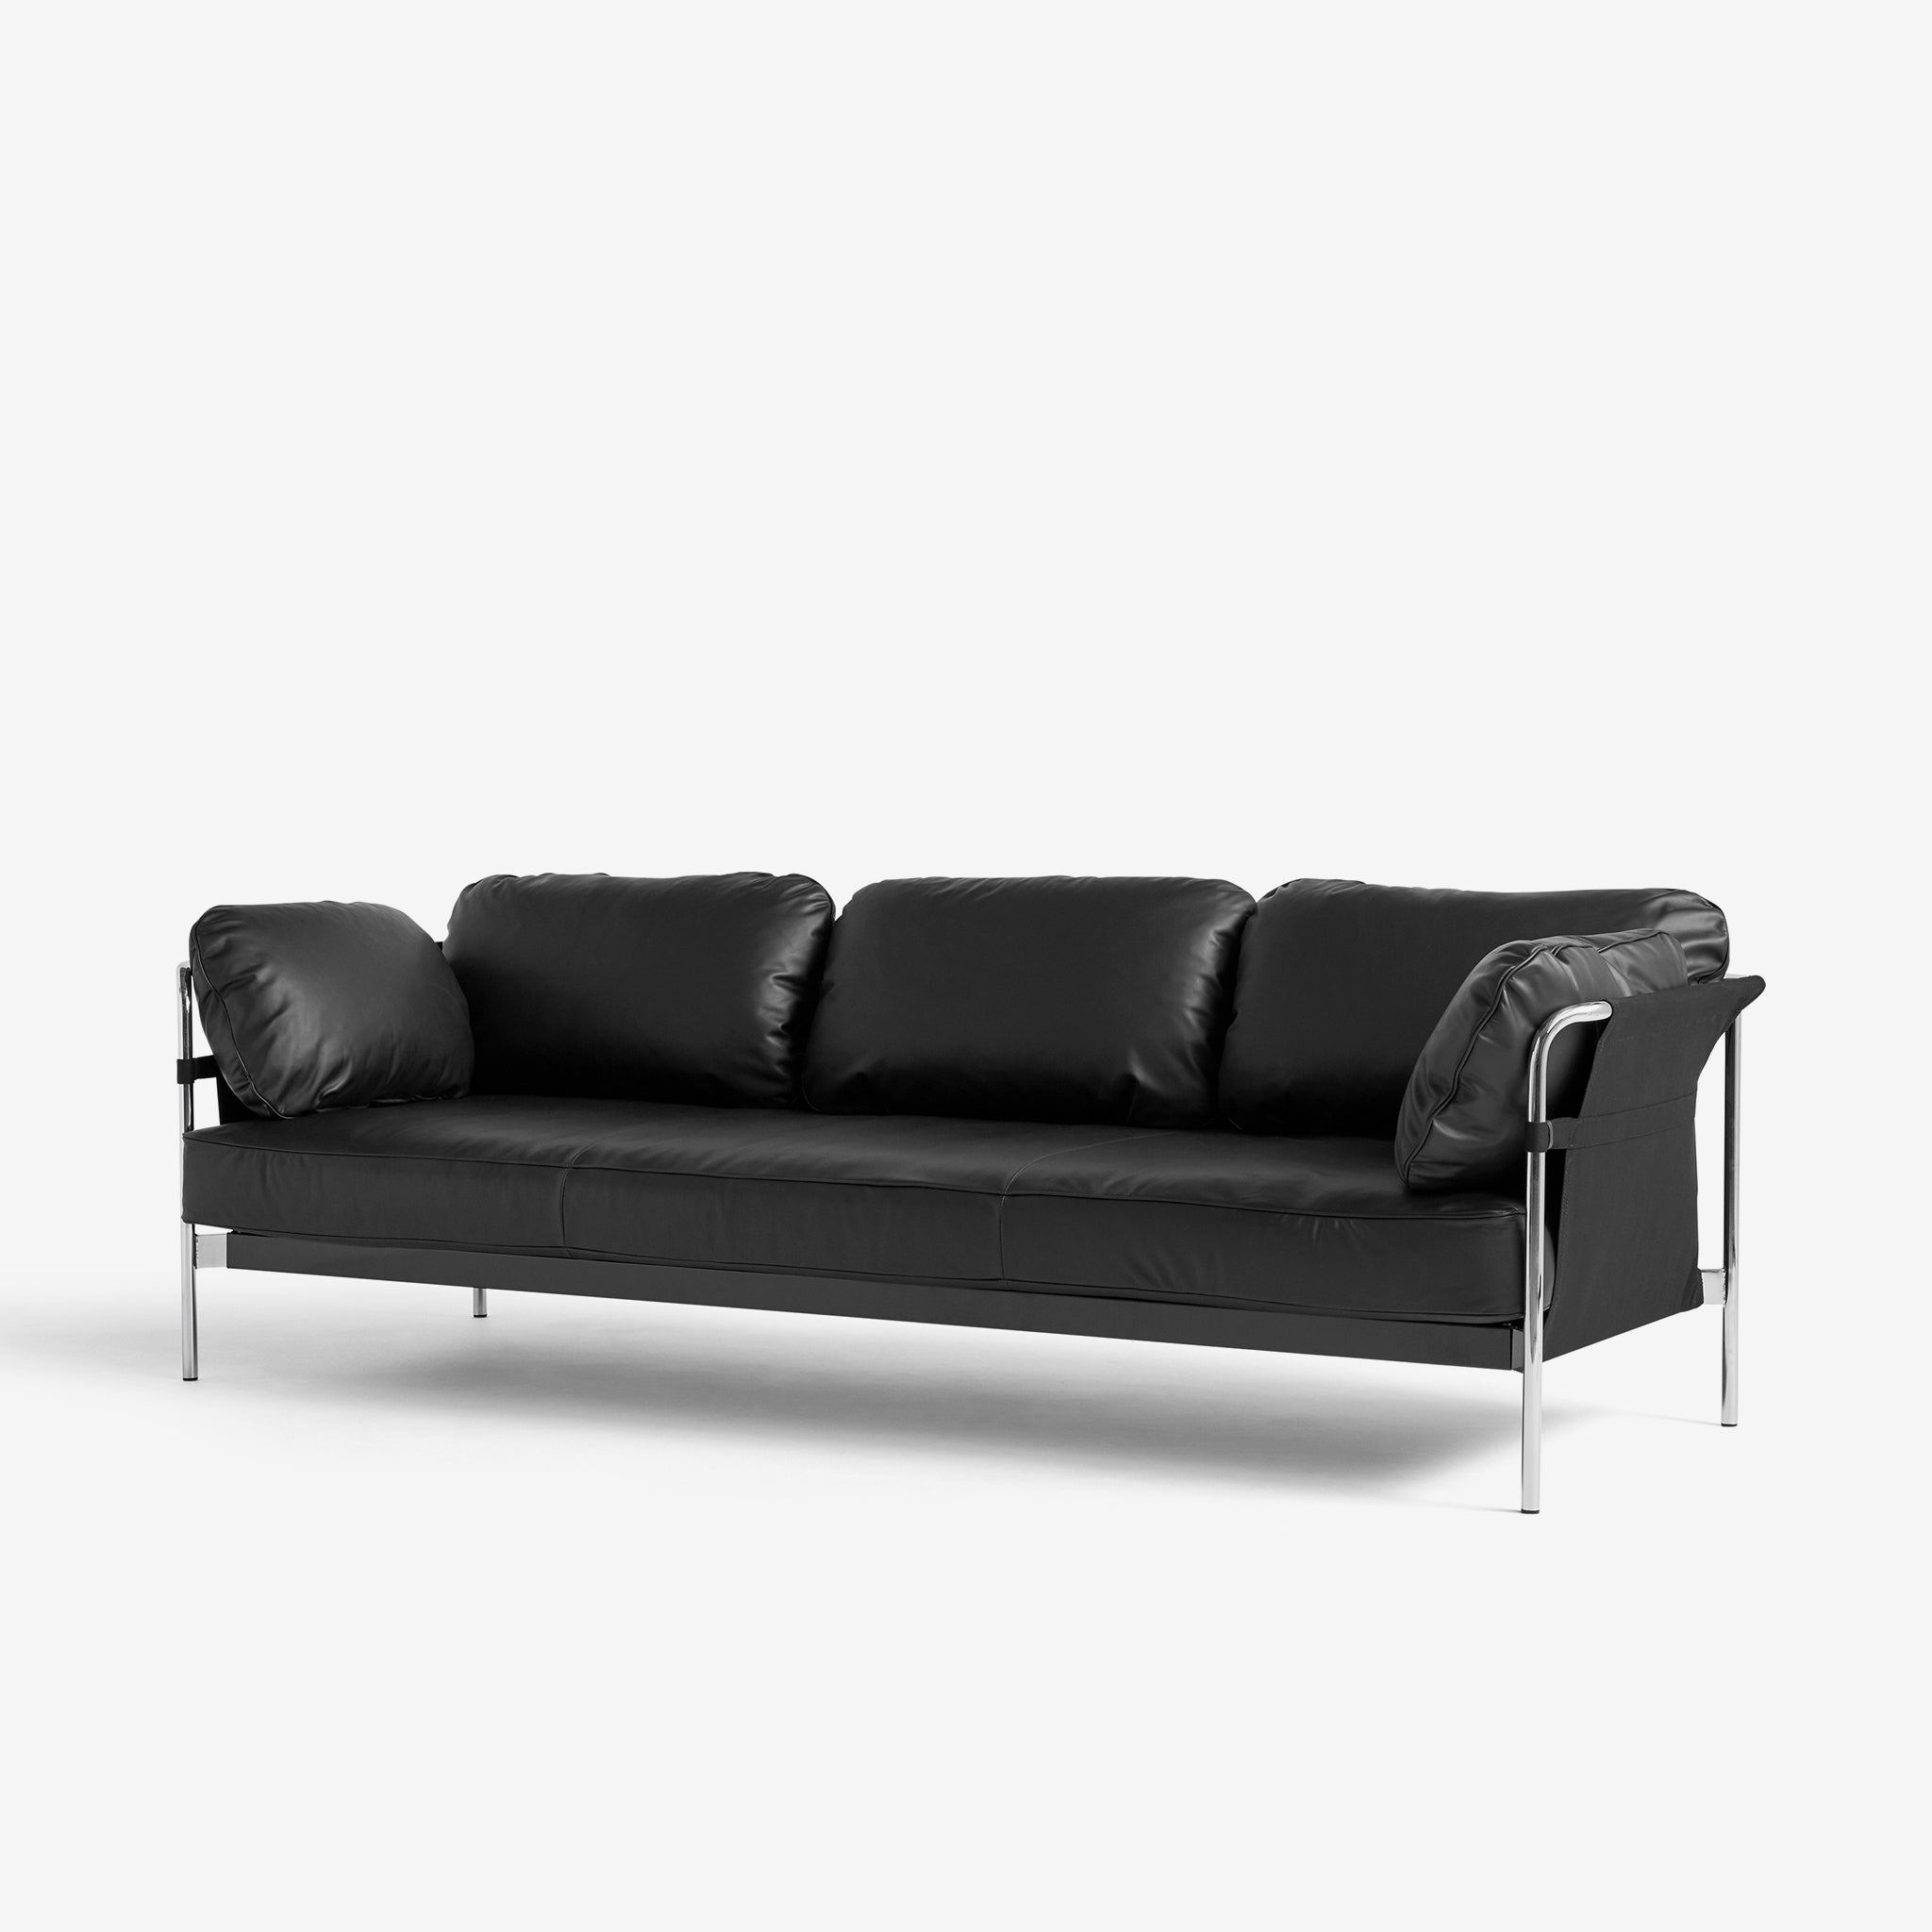 Can 2.0 Sofa - 3 Seater